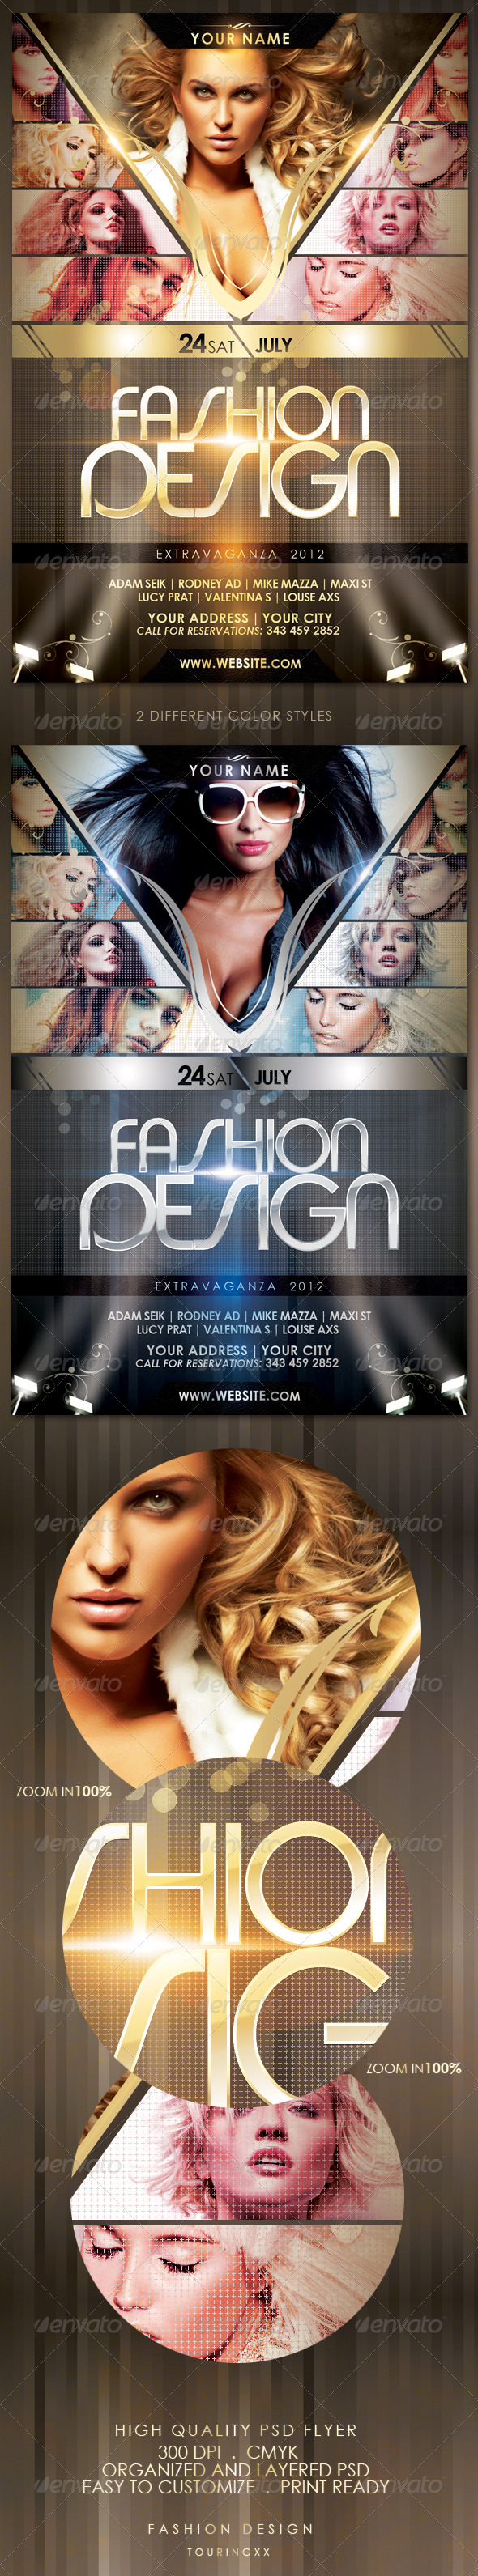 Fashion Design Flyer Template - Flyers Print Templates